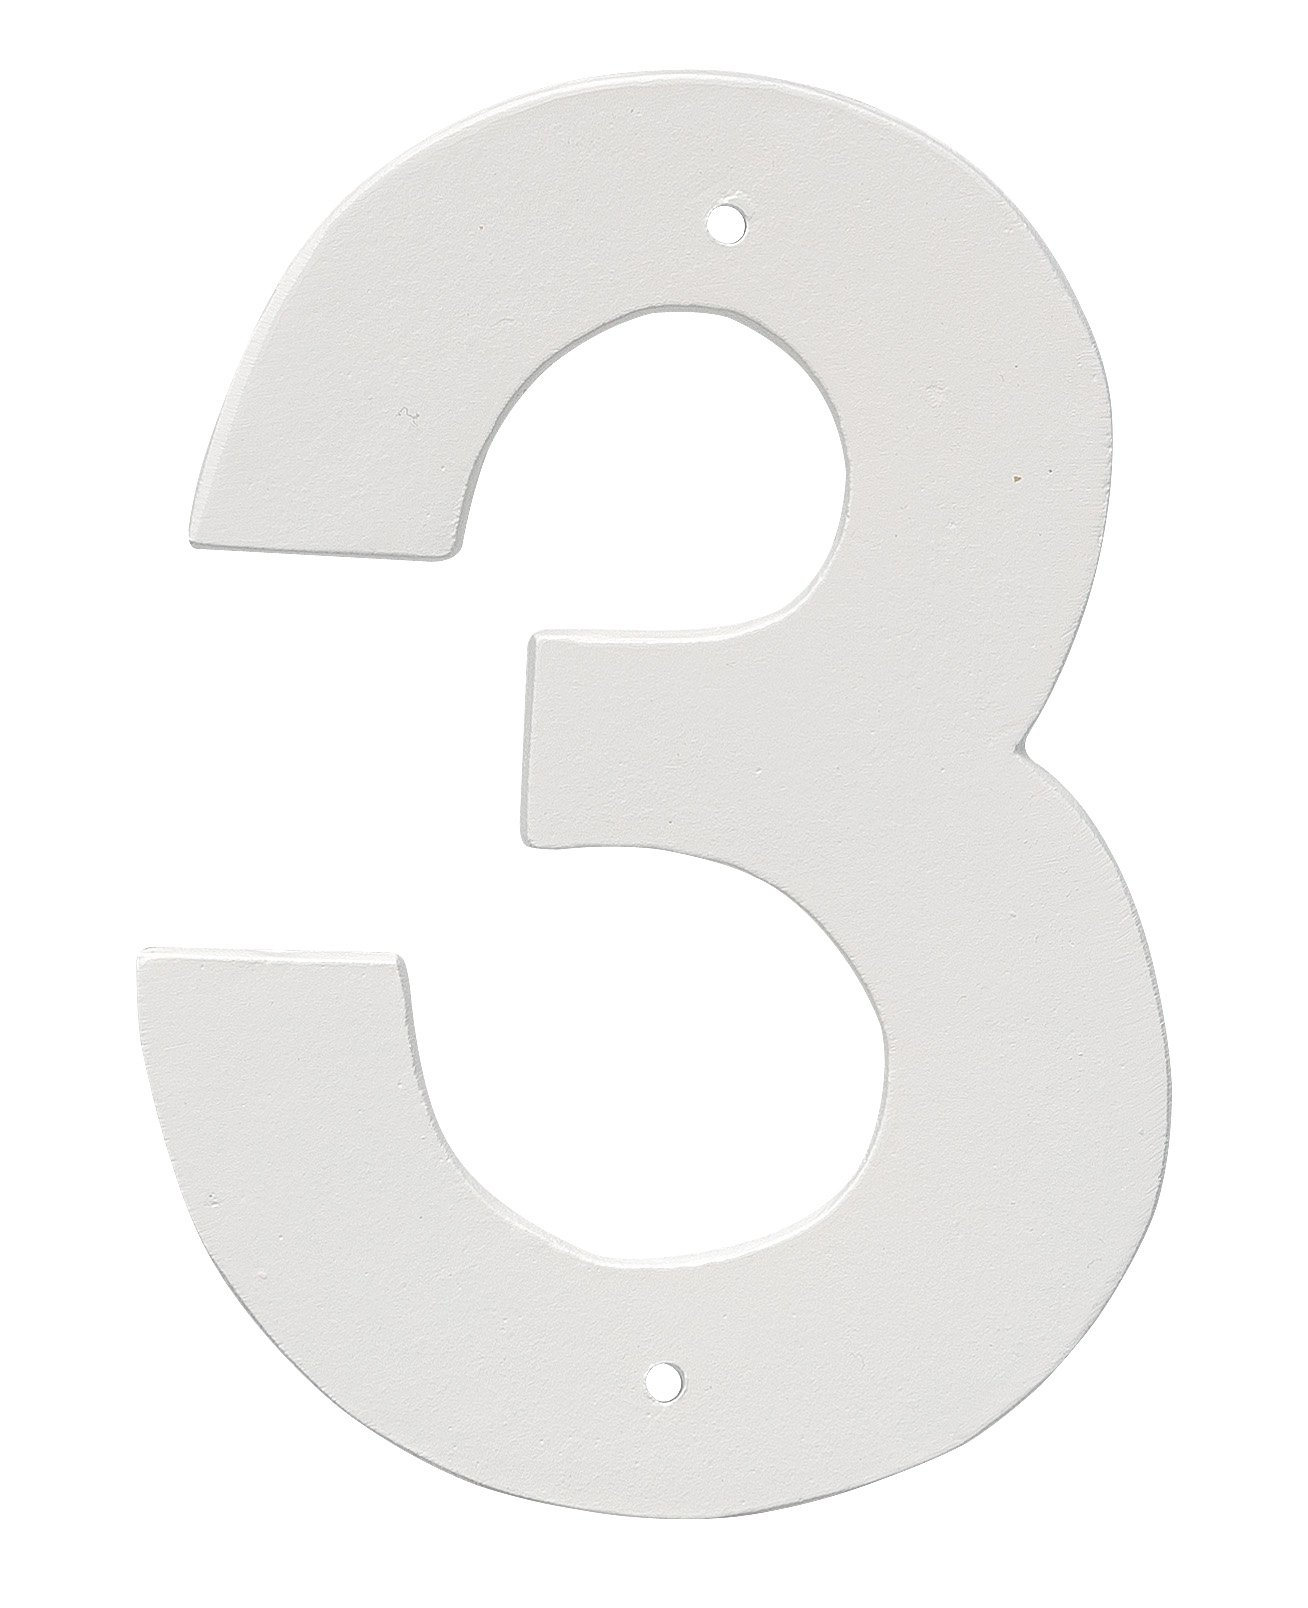 Montague Metal Products 6'' Aluminum House Number 3 Outdoor Plaque, Medium, White